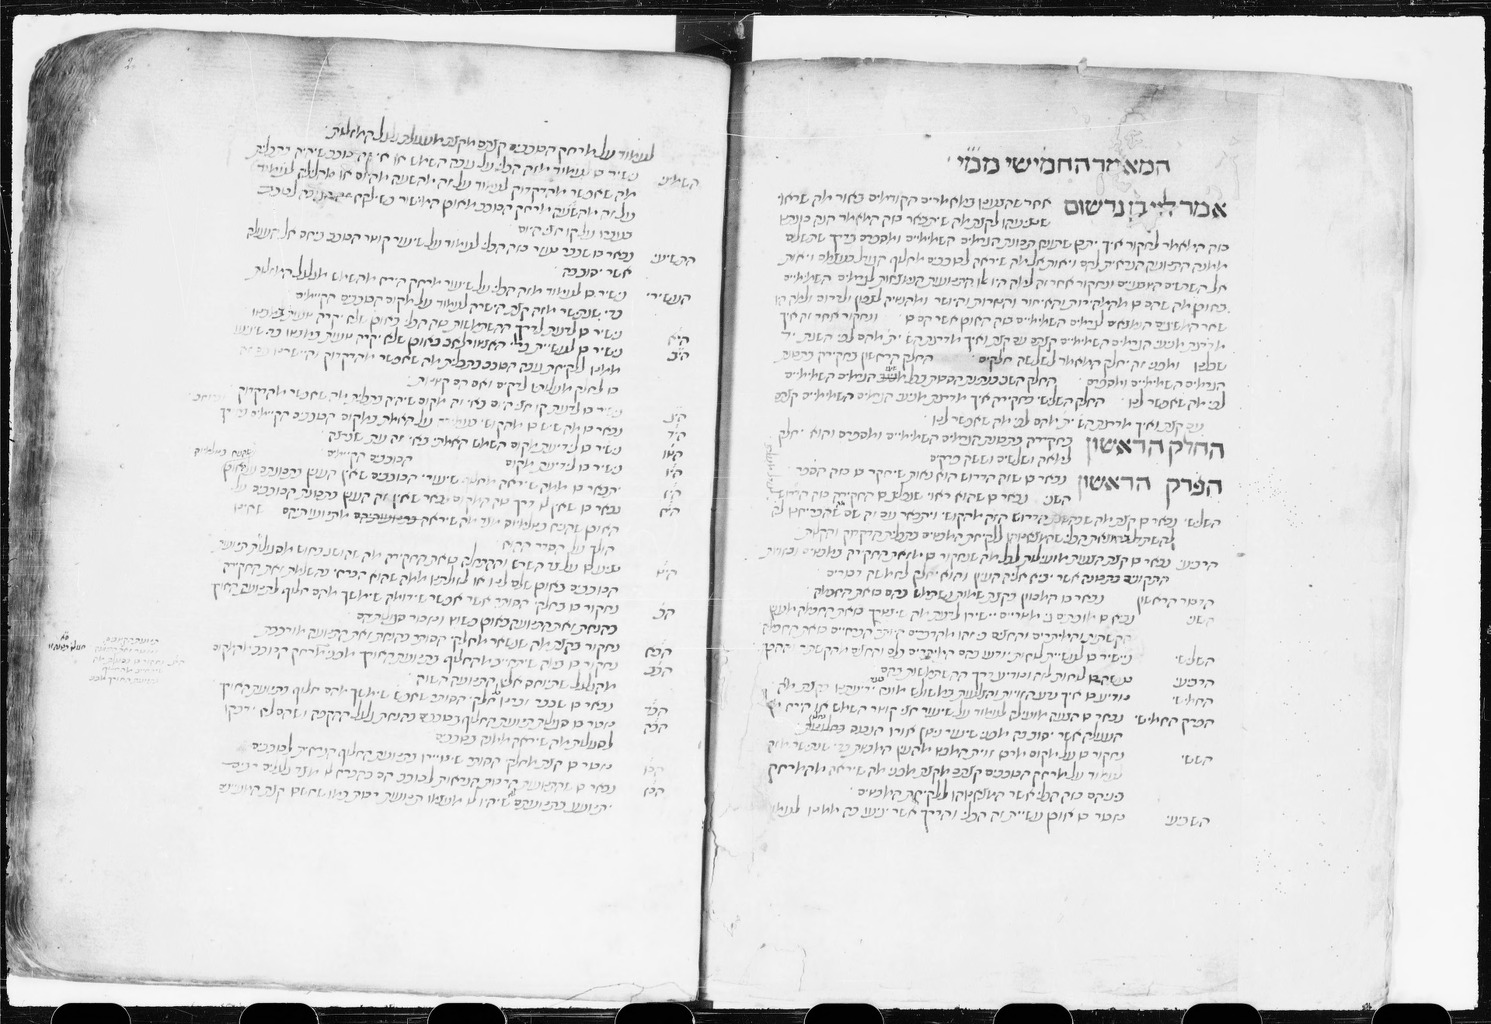 Milchamot Hashem Book V Part 1 - Manuscript Paris Hebreu 724 Folio 1